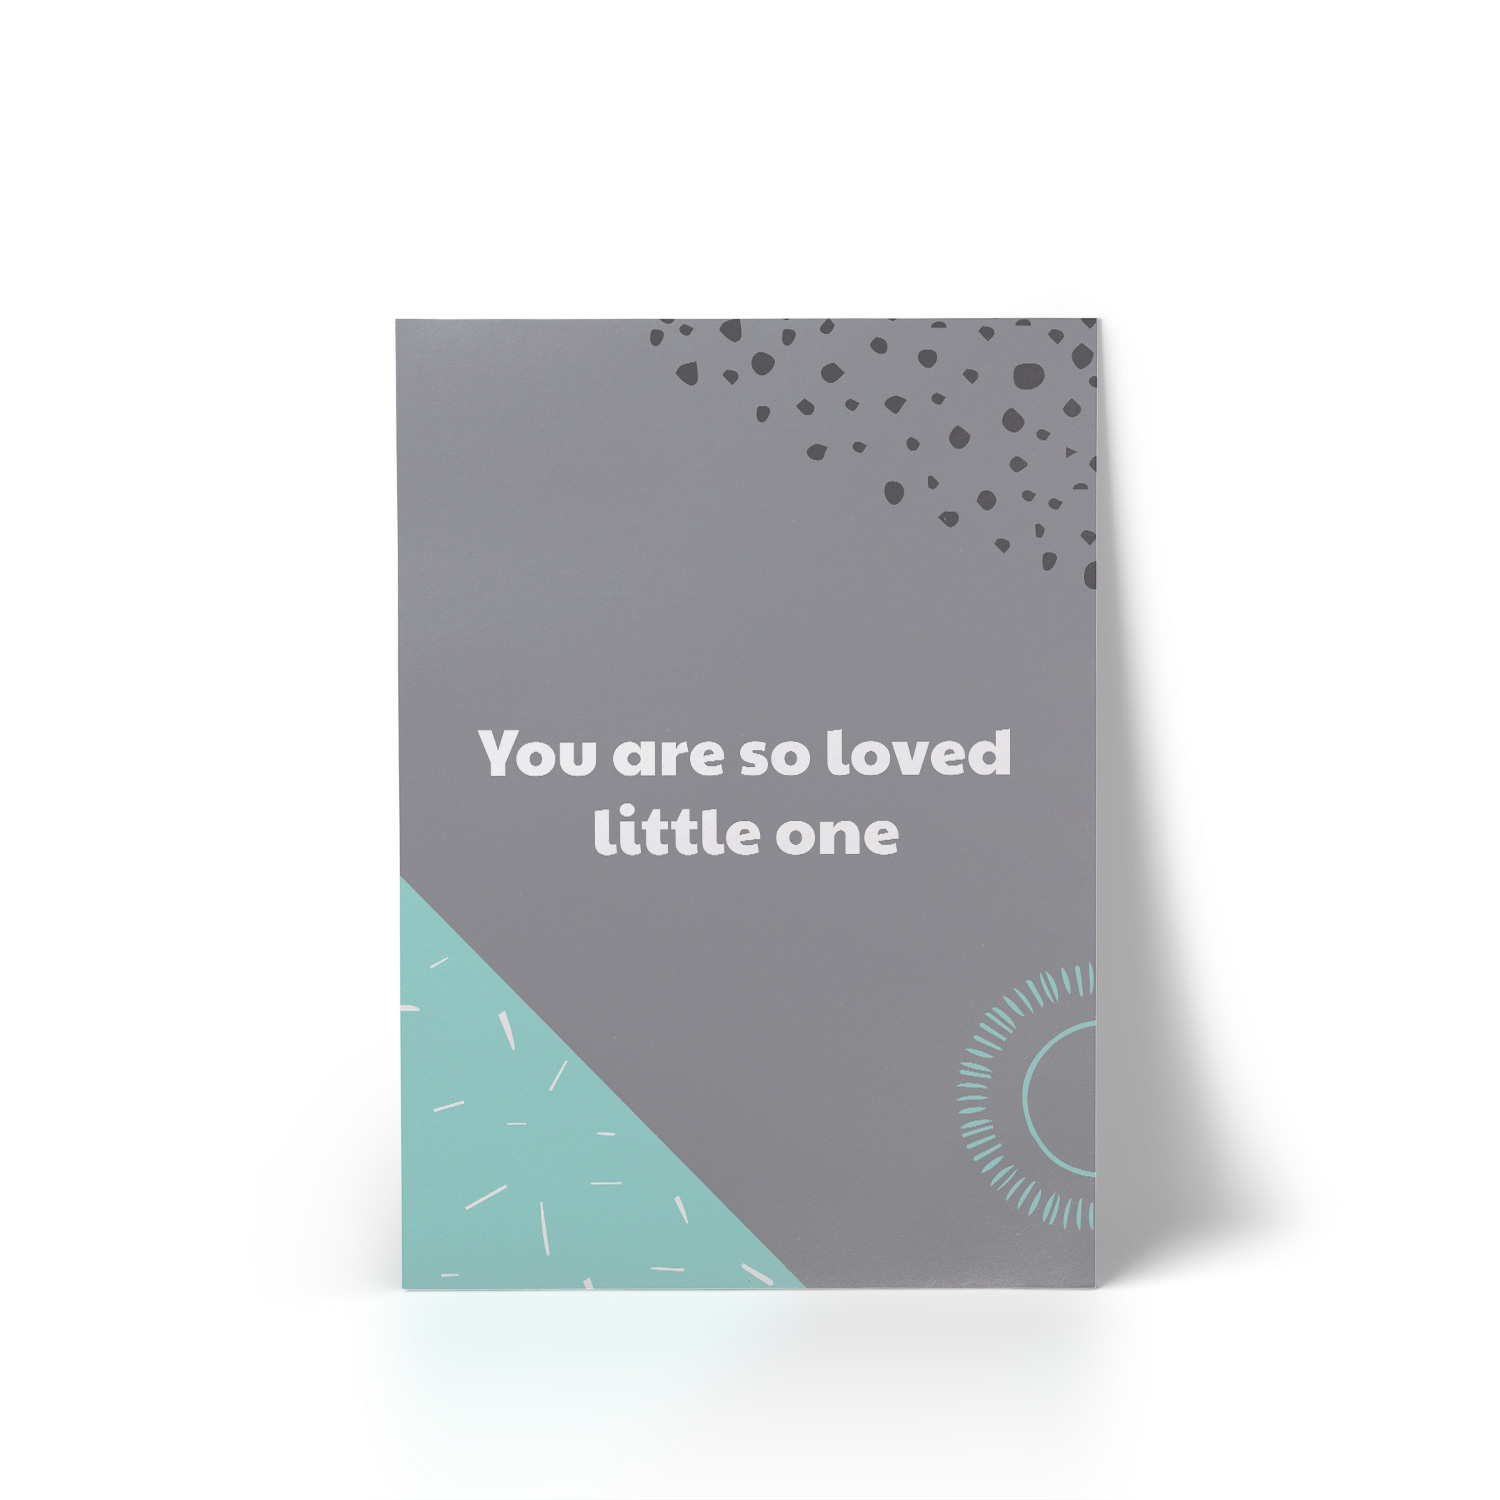 You Are So Loved Mint A4 Art Print